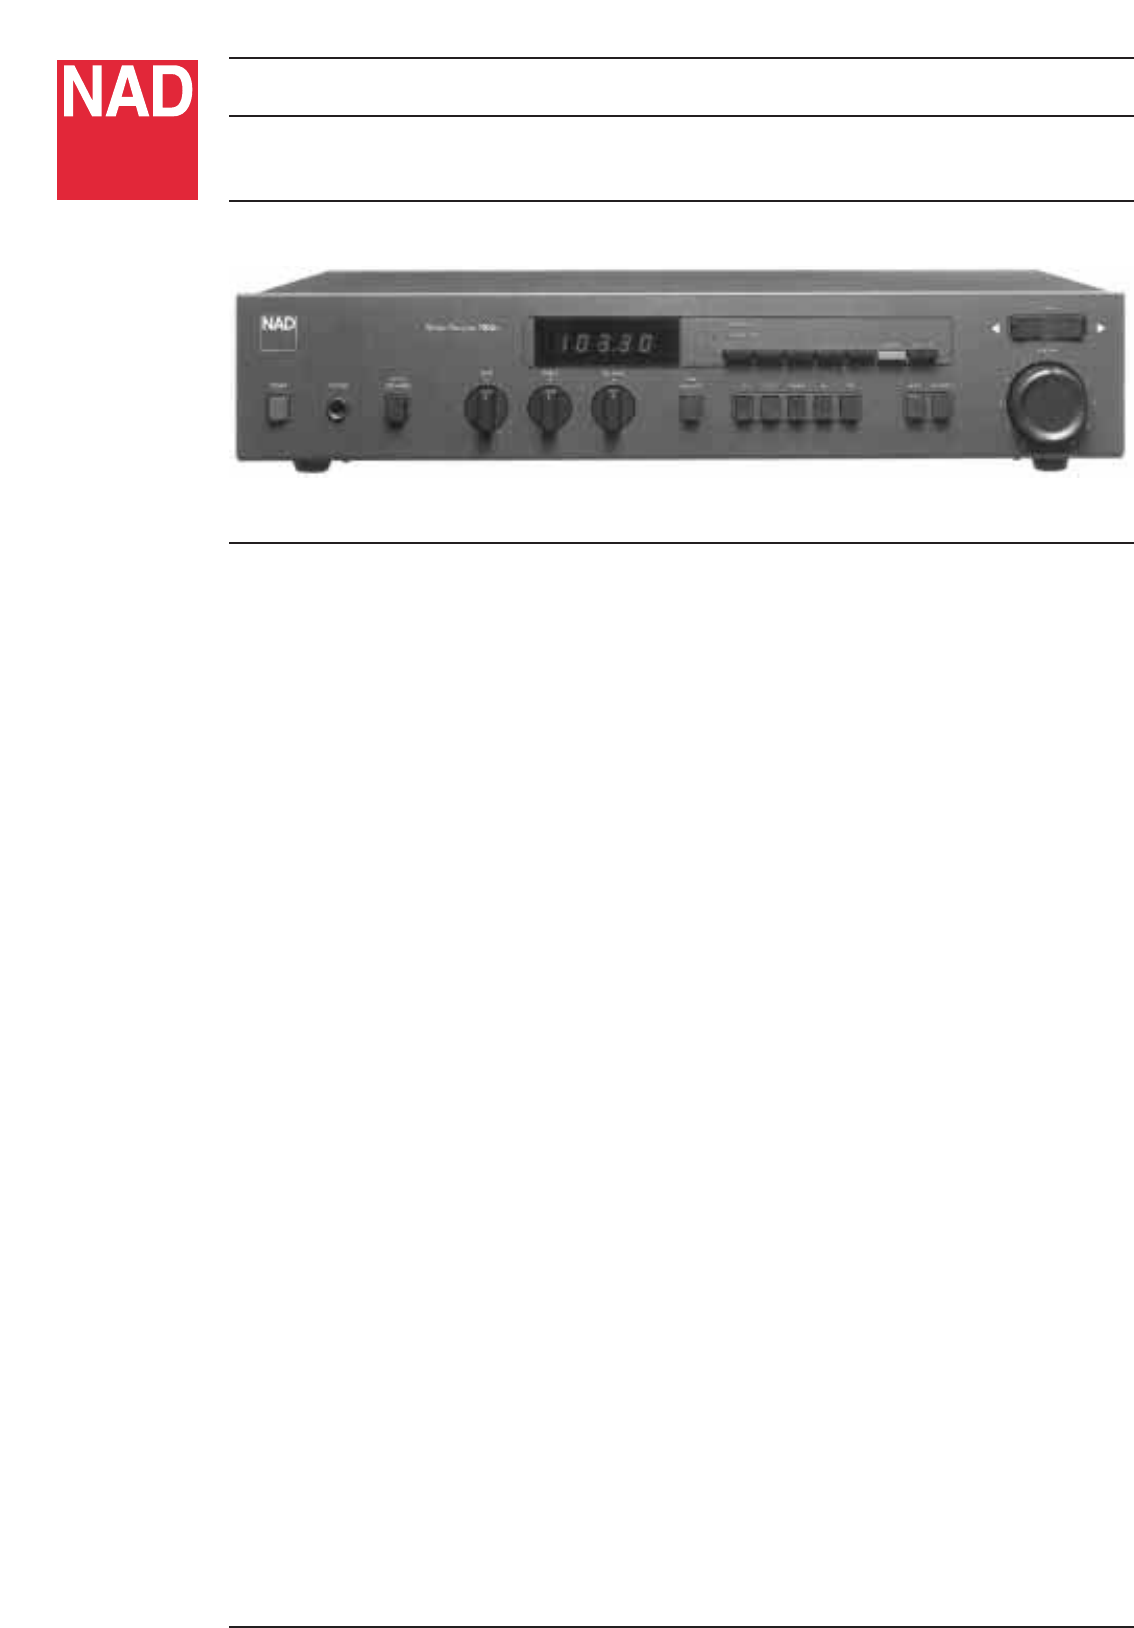 nad stereo receiver 7020e user guide manualsonline com rh audio manualsonline com Nad 7030 Nad 7030